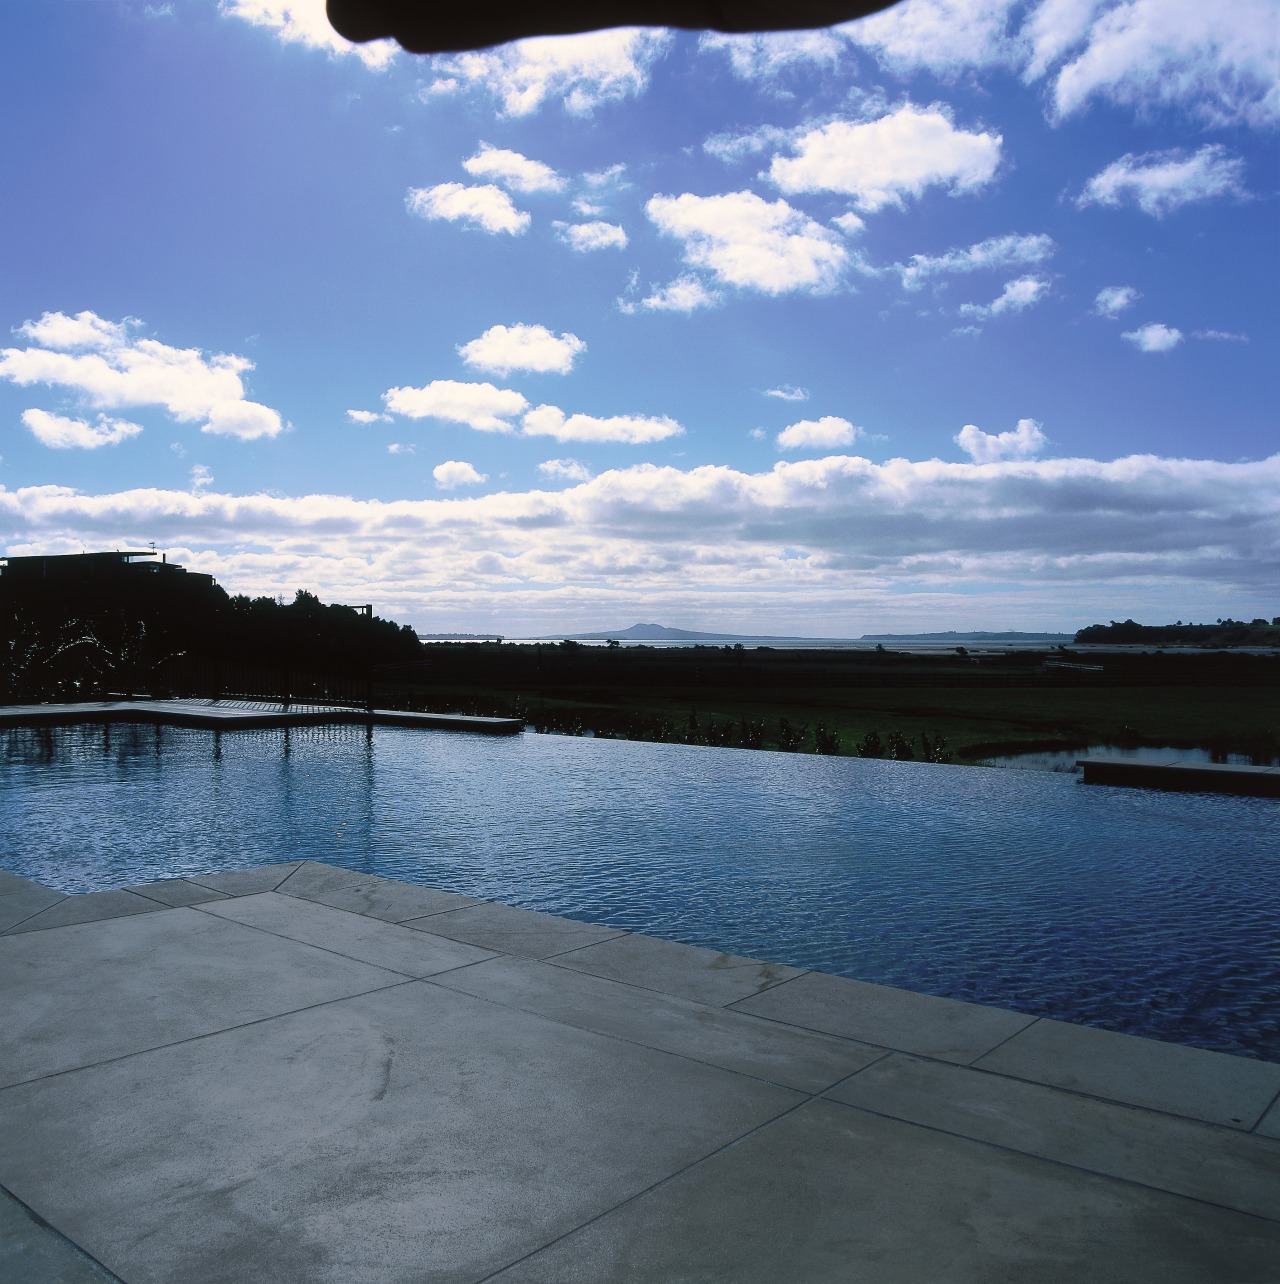 Infinity edge pool with sandstone coloured concrete surround calm, cloud, horizon, lake, loch, meteorological phenomenon, phenomenon, reflection, reservoir, river, sky, sunlight, tree, water, water resources, waterway, teal